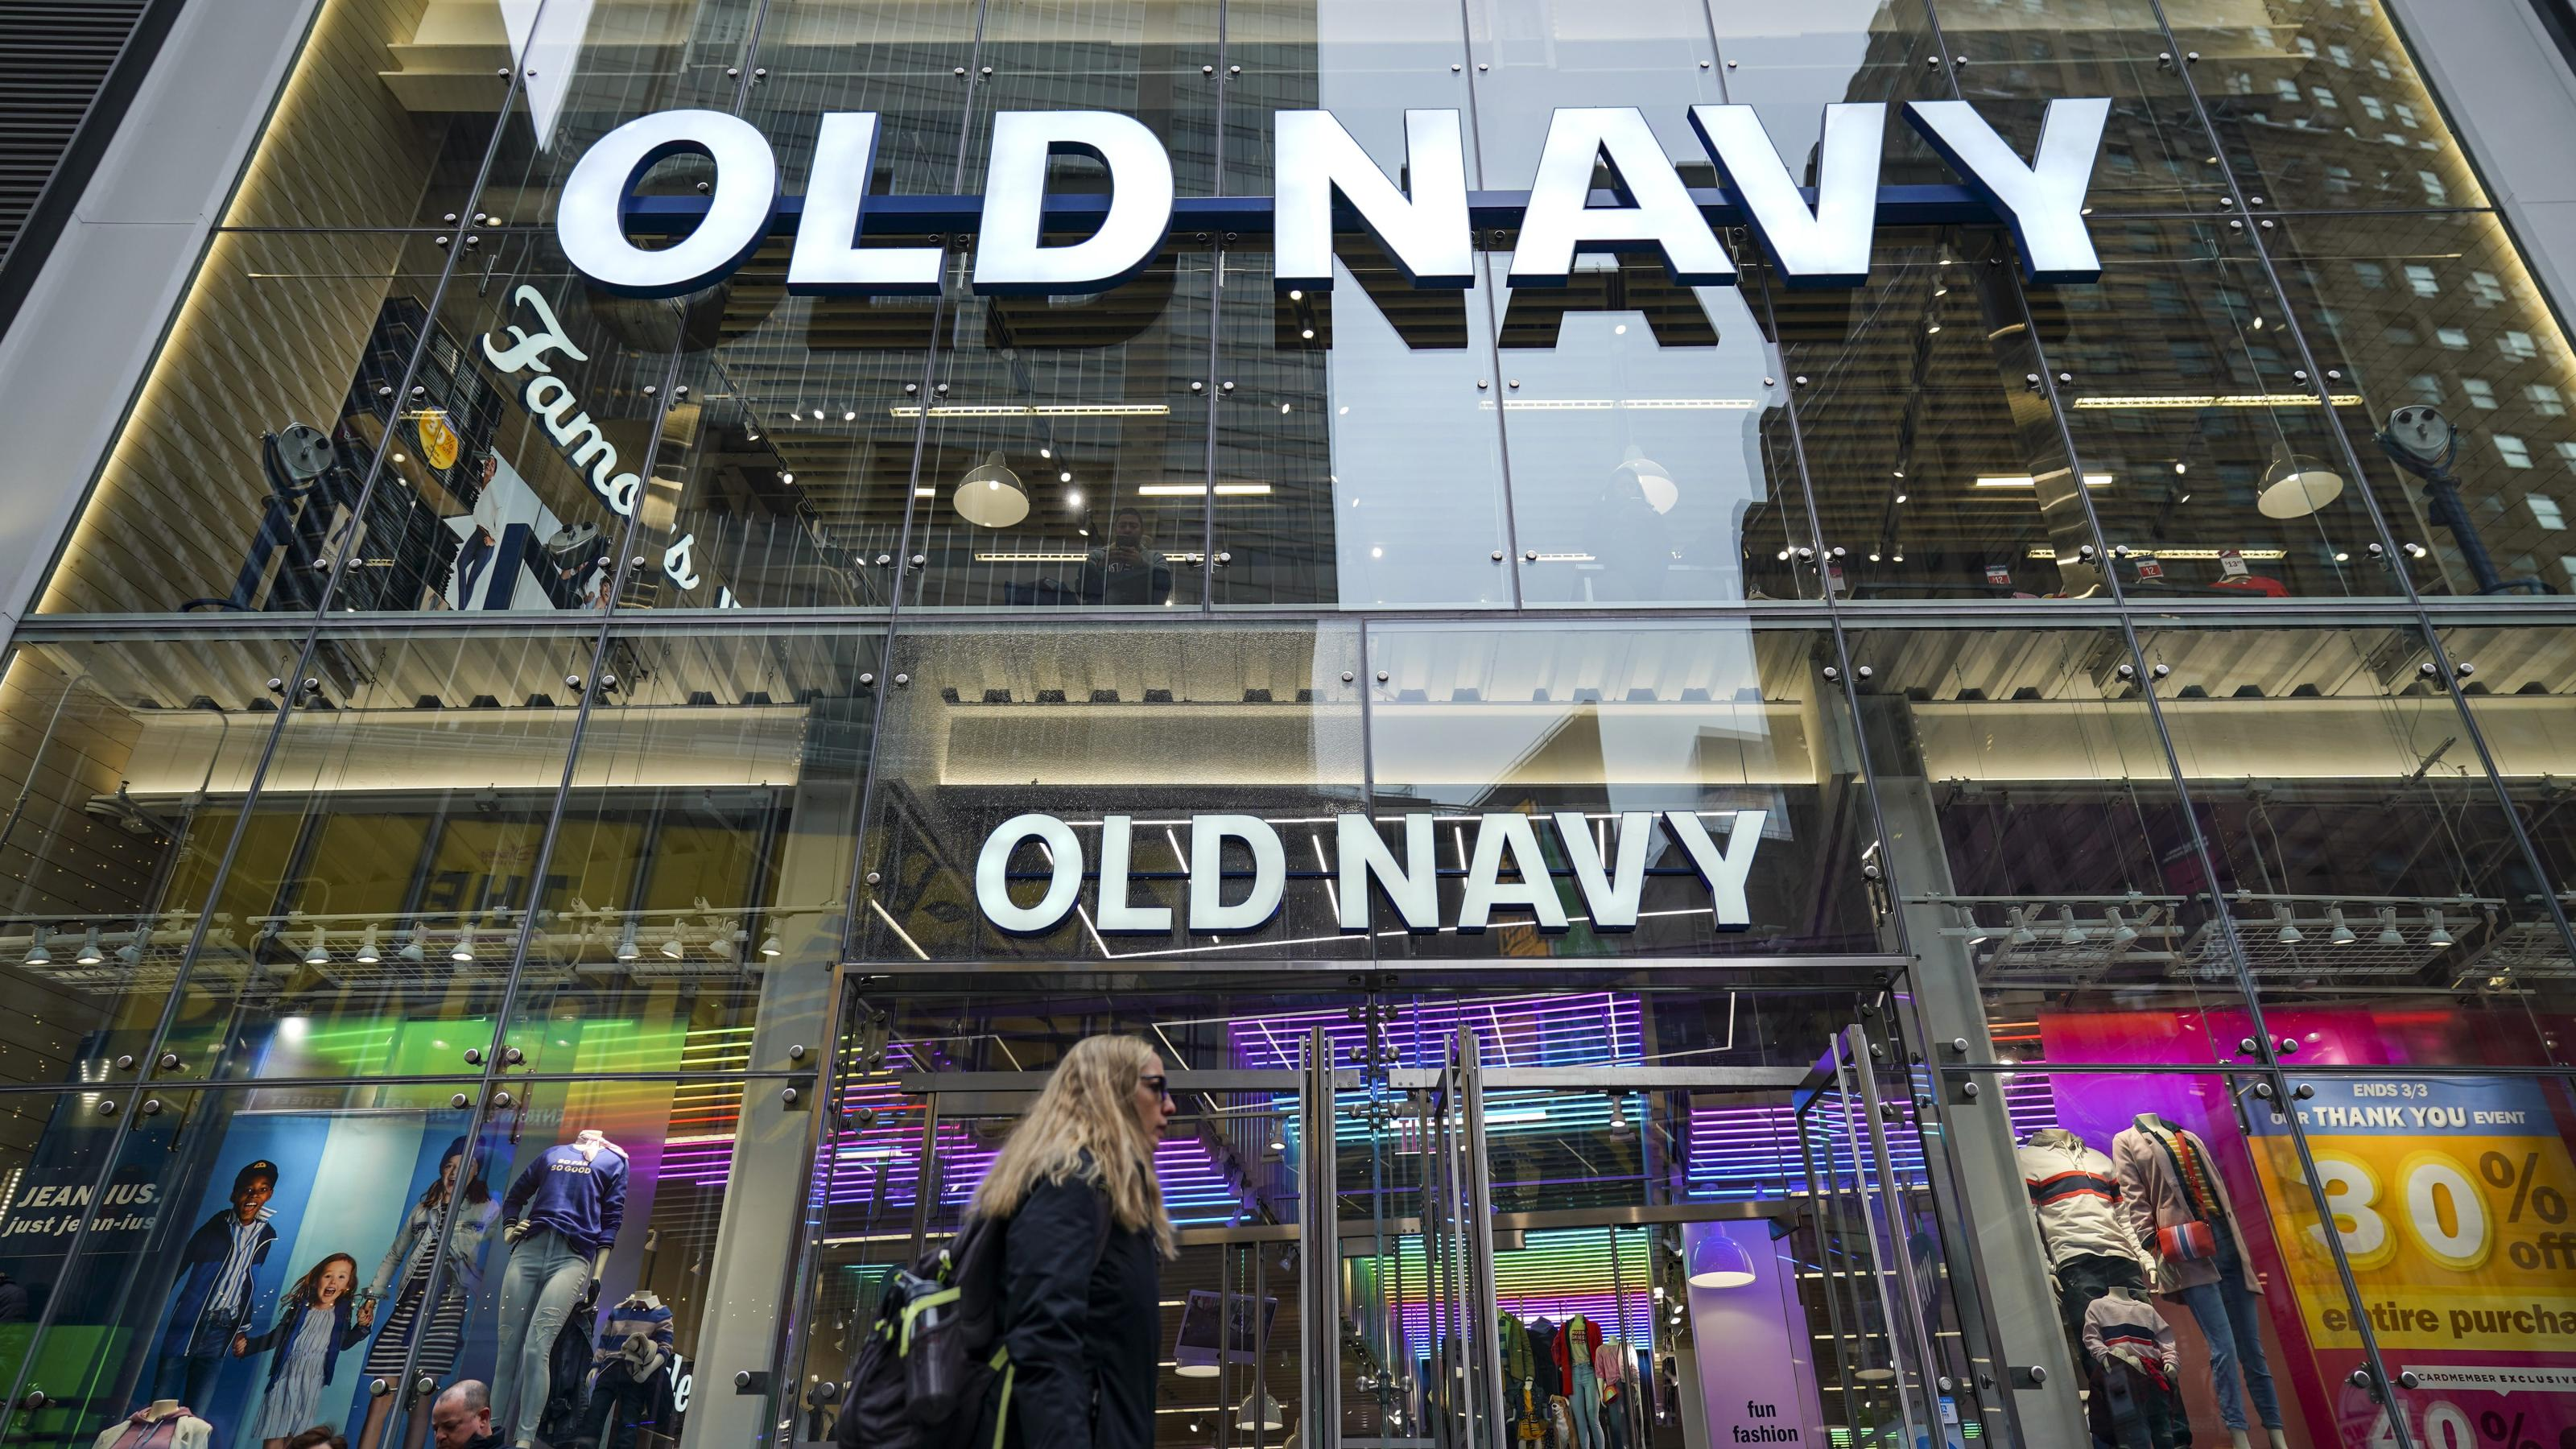 Old Navy plans 800 new stores despite retail's dismal outlook